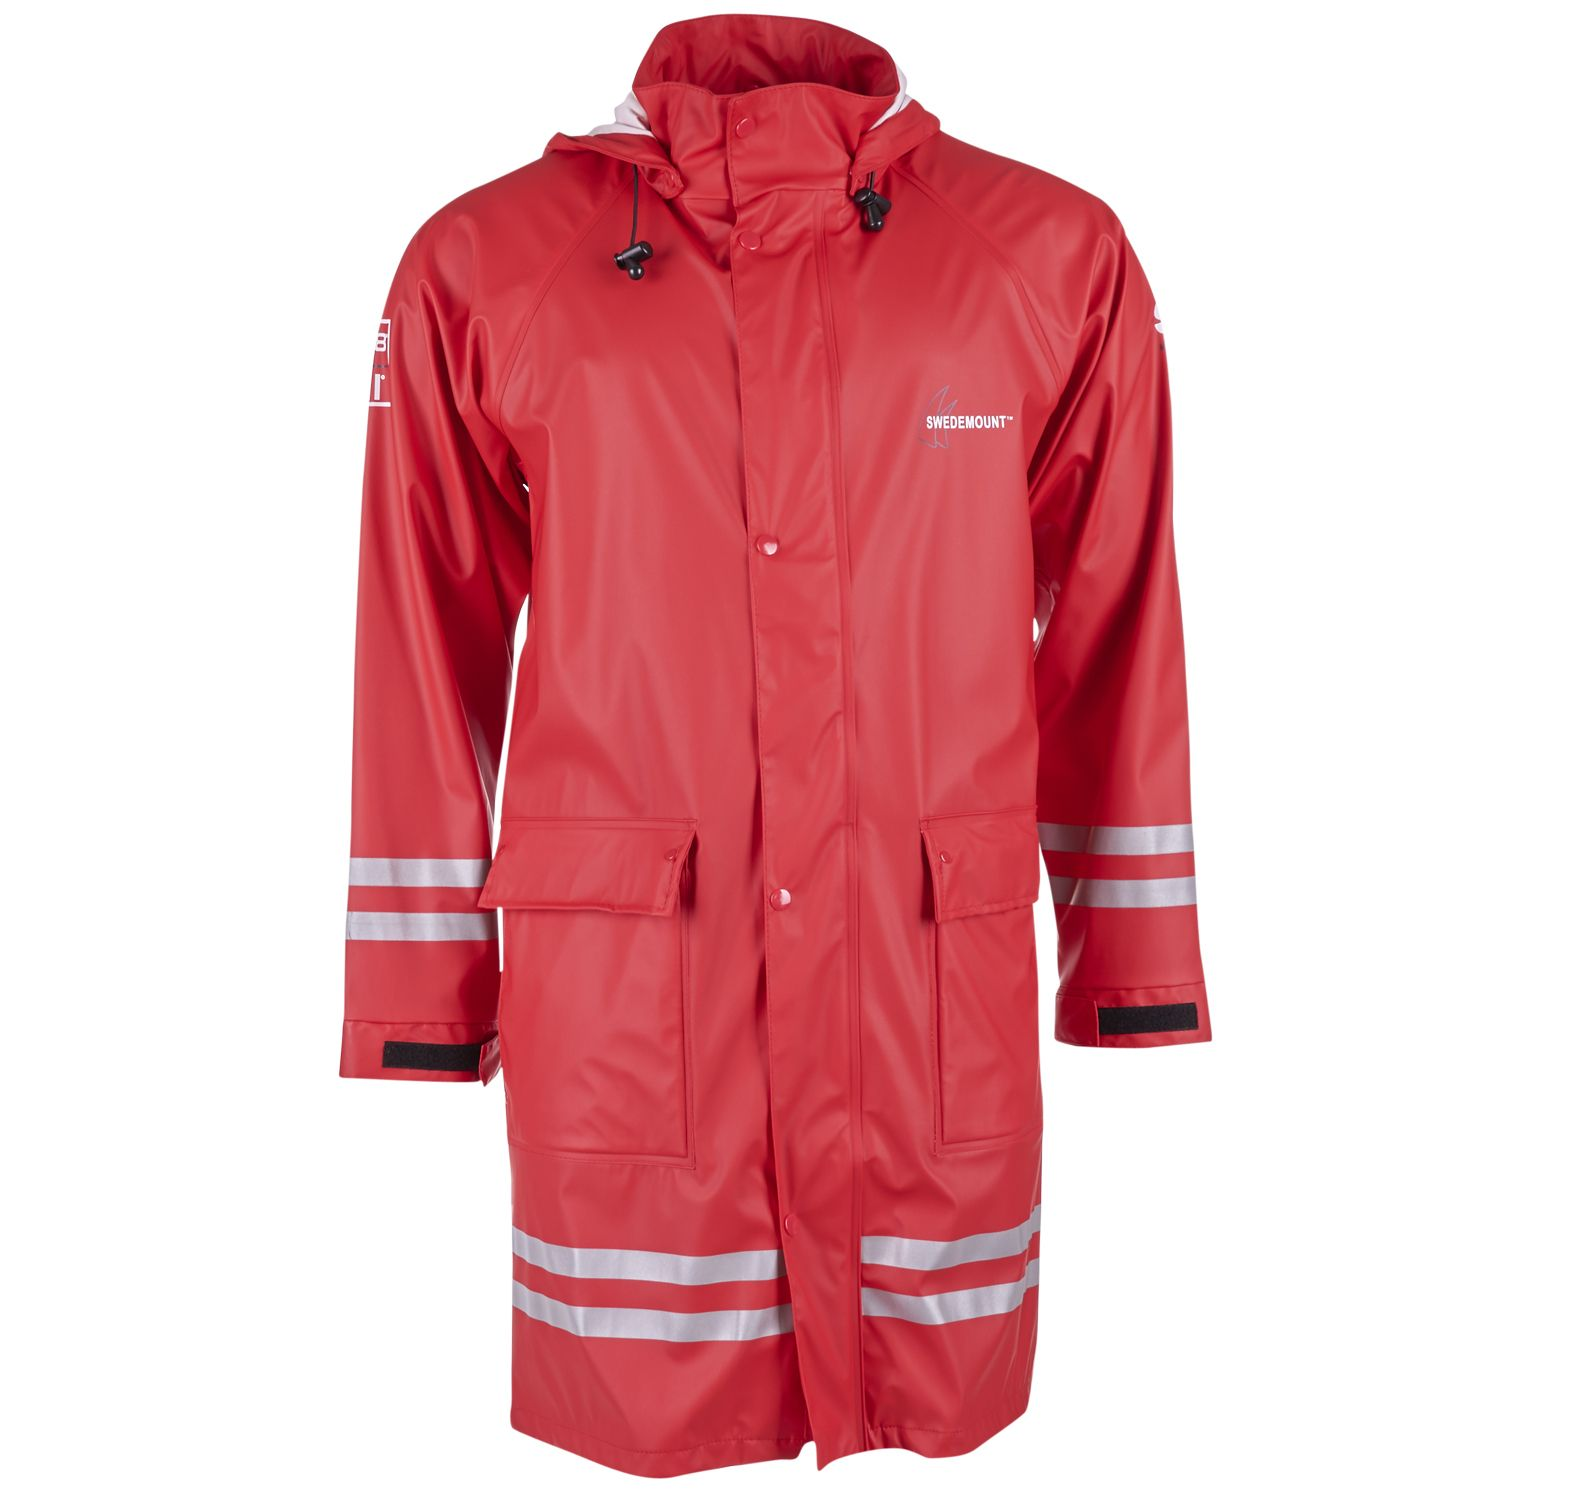 Koster Raincoat, Red, 2xl, Regnkläder